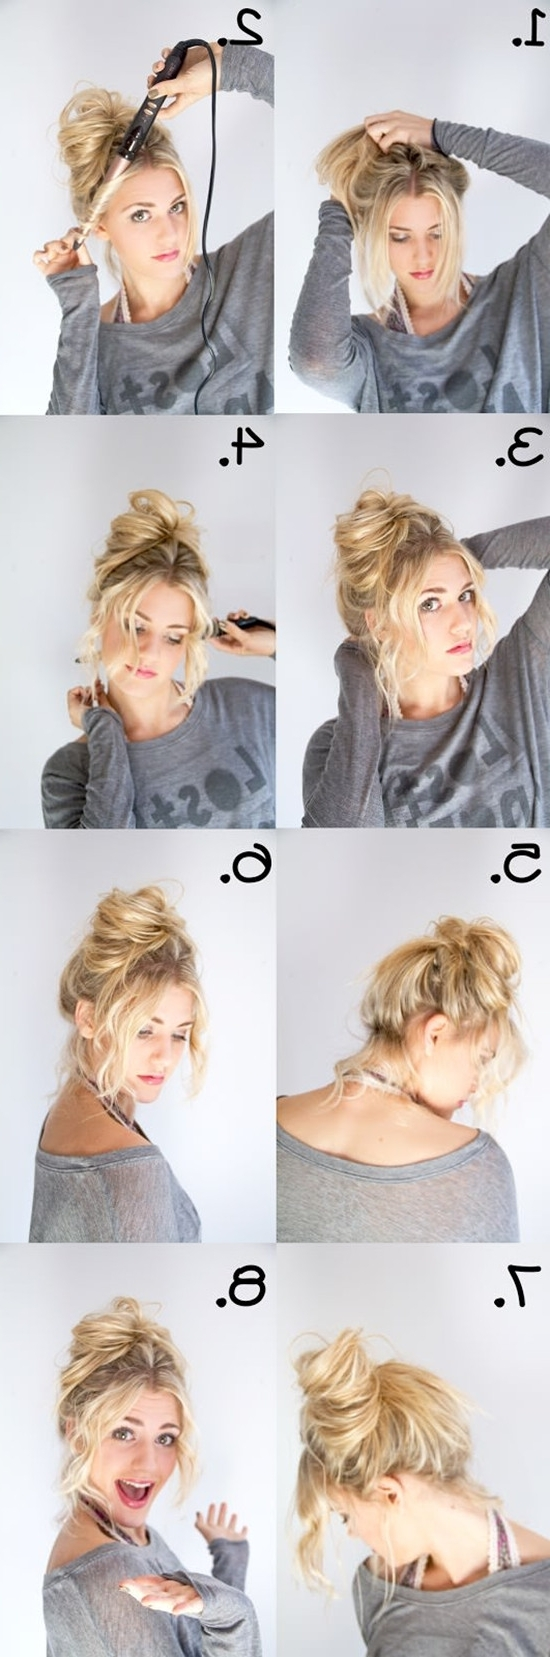 Messy Updo For Thin Hair 2018 – Forensicanth – Forensicanth Pertaining To Easy Casual Updo Hairstyles For Thin Hair (View 14 of 15)